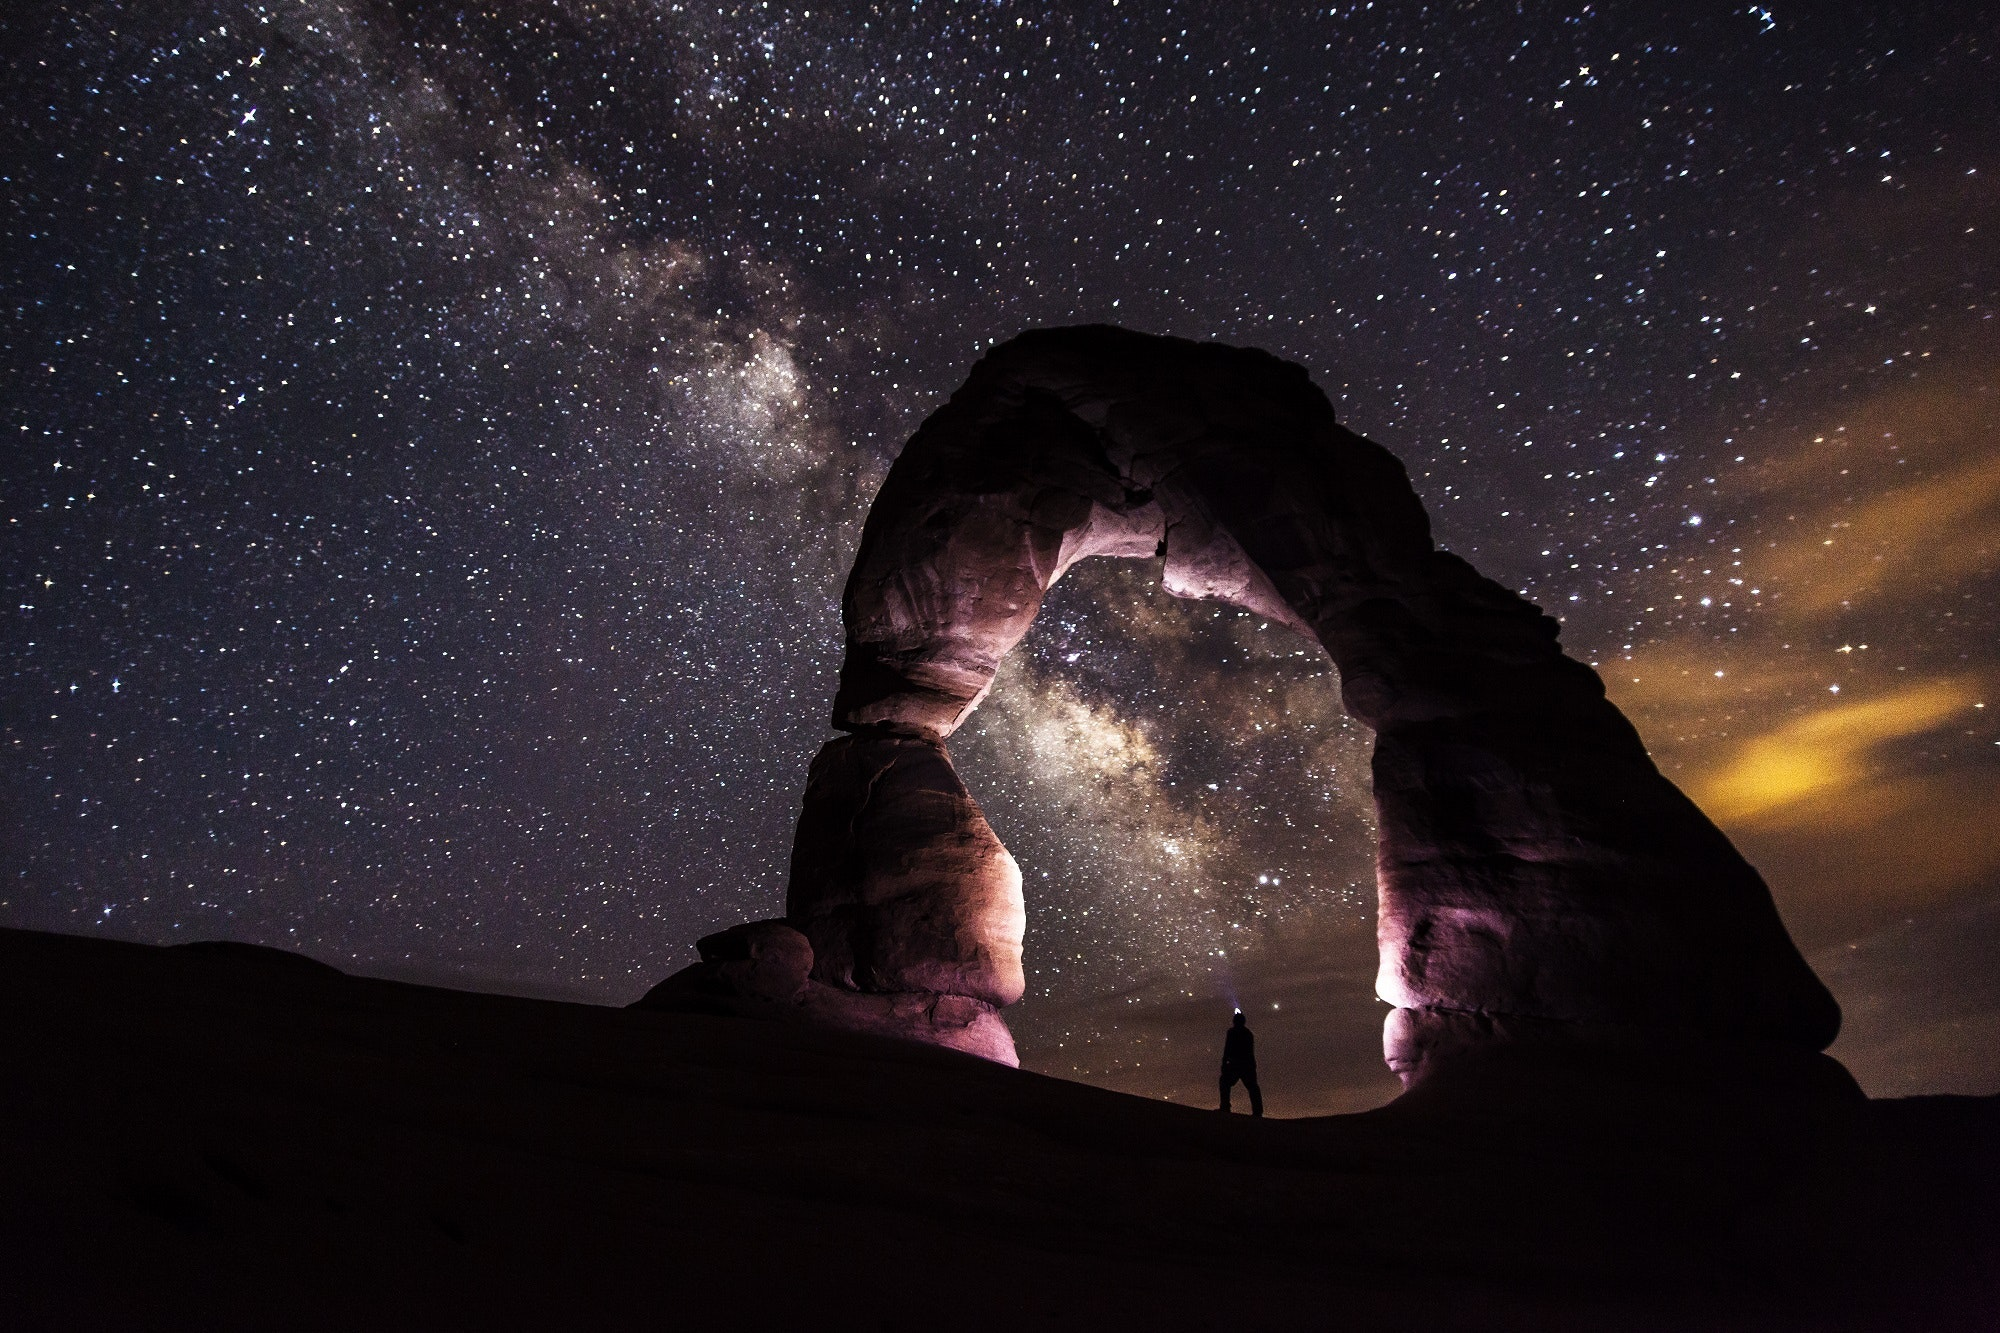 arches-national-park-dark-dusk-33688.jpg